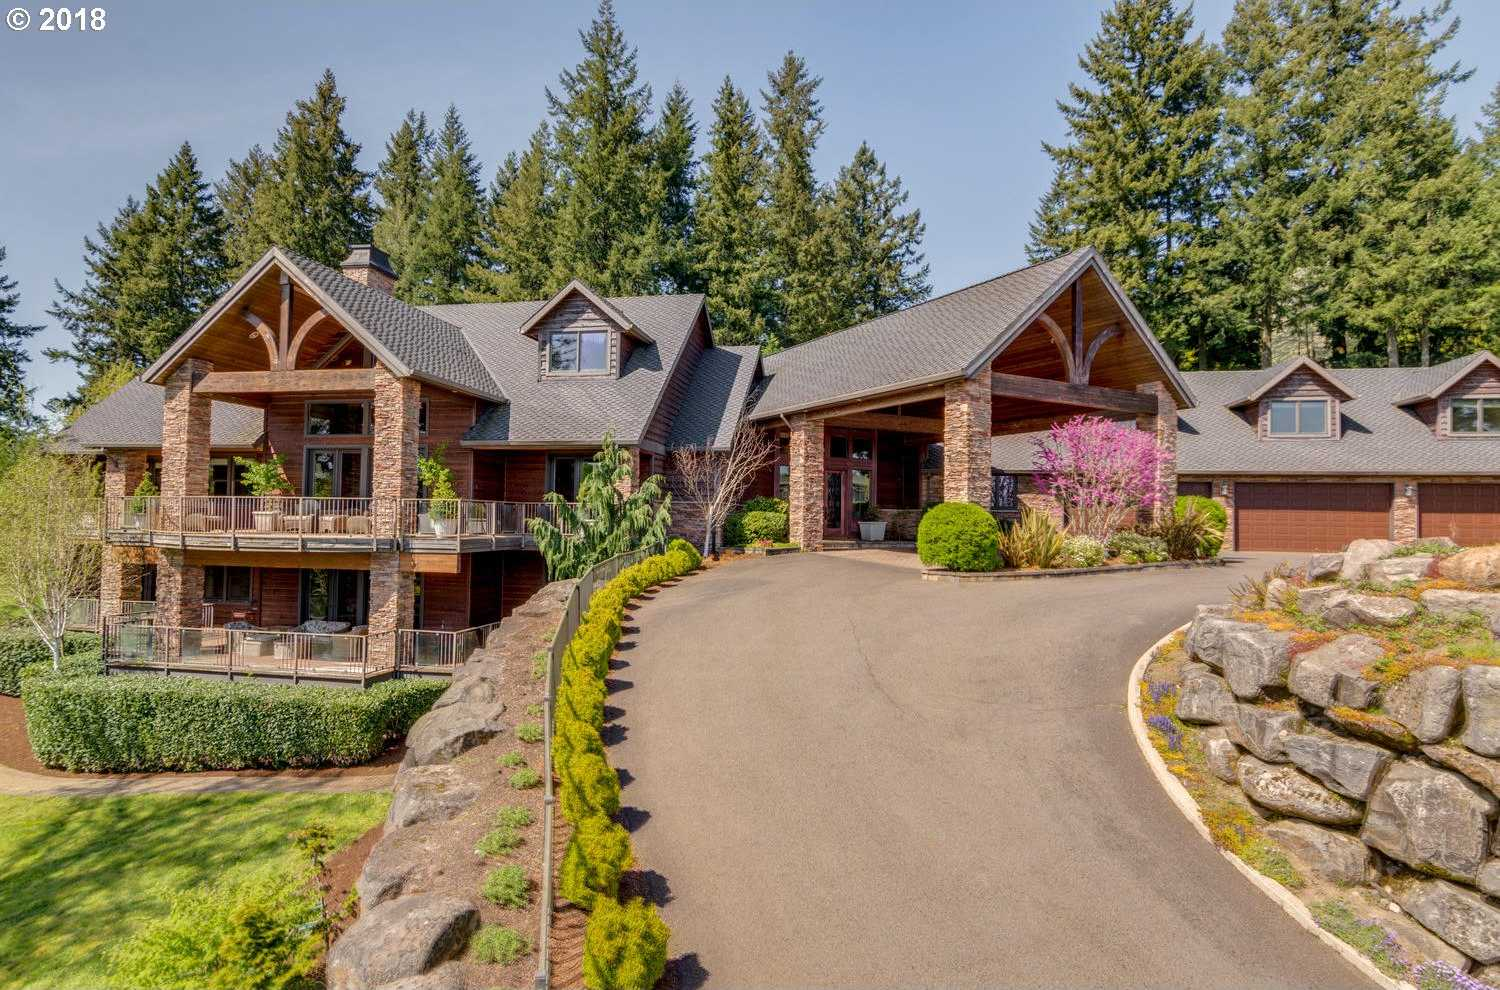 $1,995,000 - 6Br/7Ba -  for Sale in Wilsonville